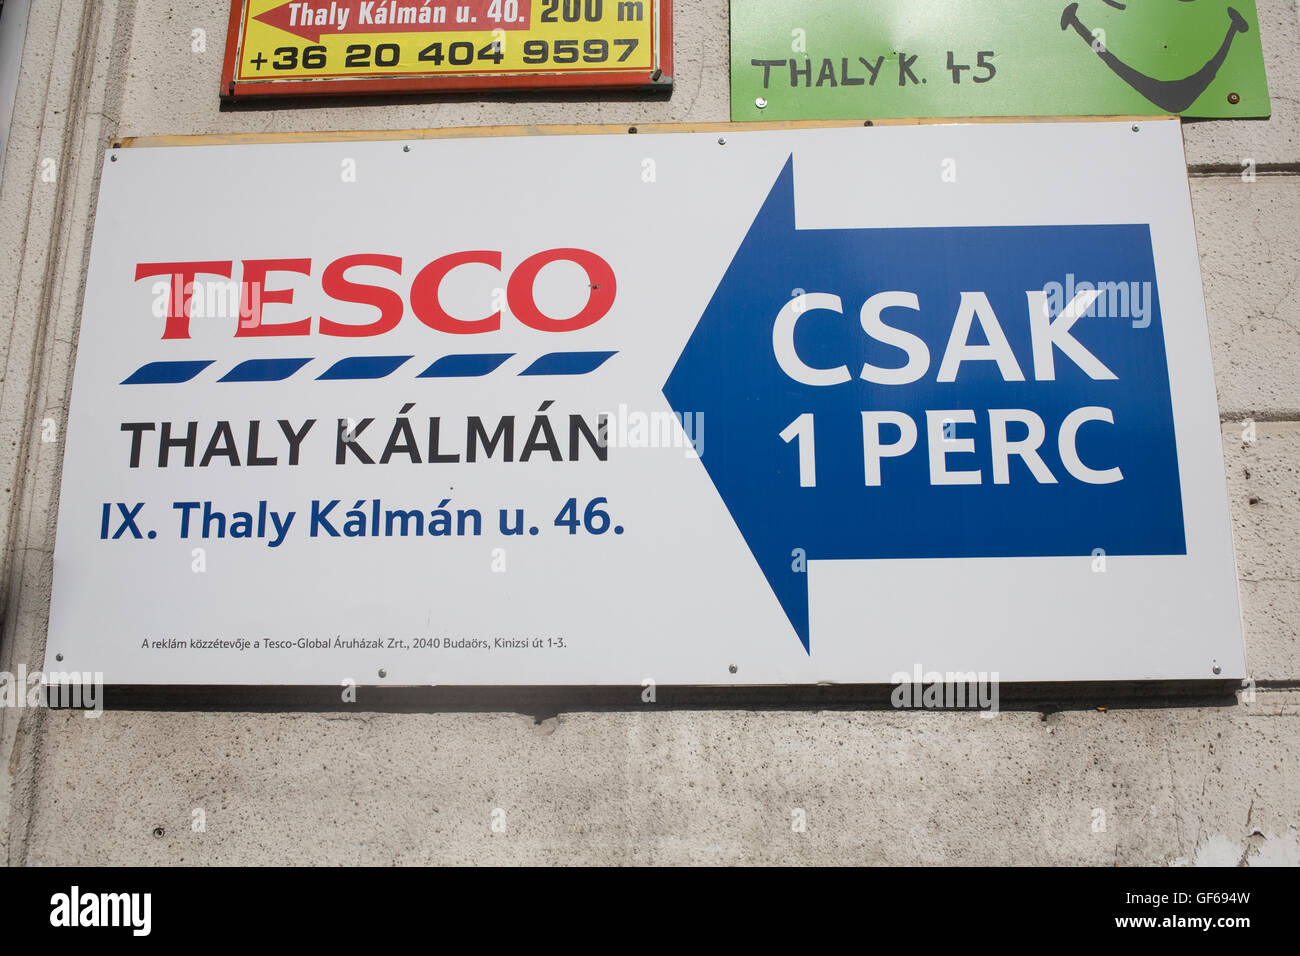 Tesco Sign On Store On Stock Photos   Tesco Sign On Store On Stock ... 8a0d901b93